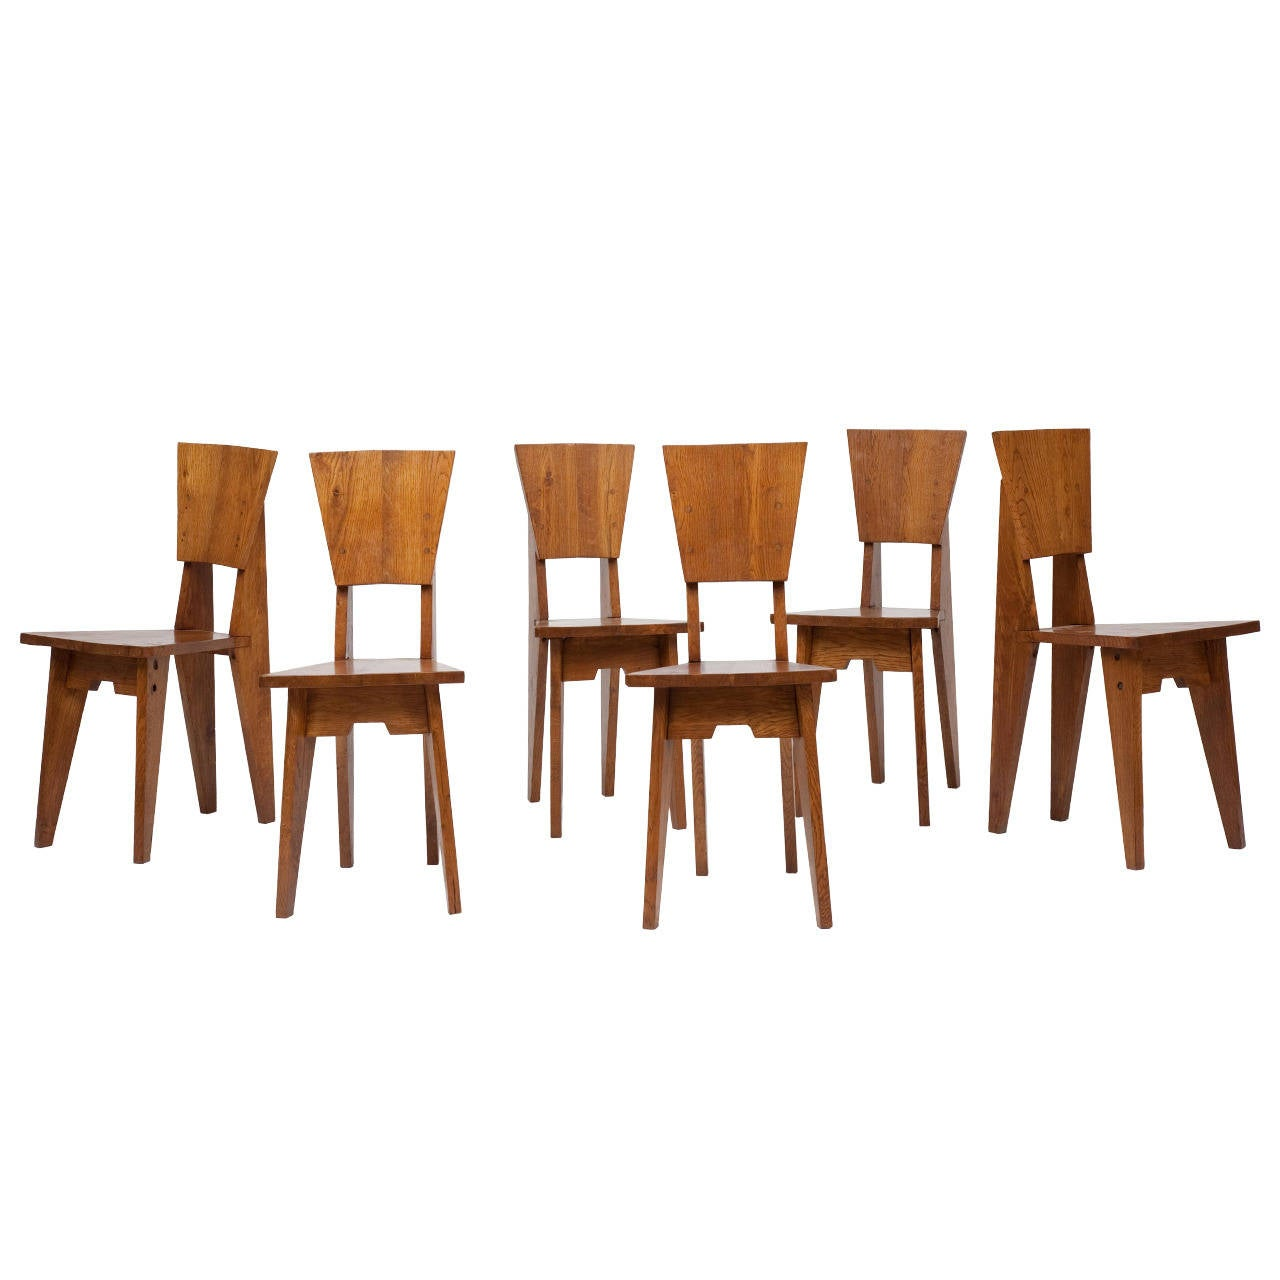 Jean René Caillette, Set Of Six Wooden Chairs, Circa 1950 1